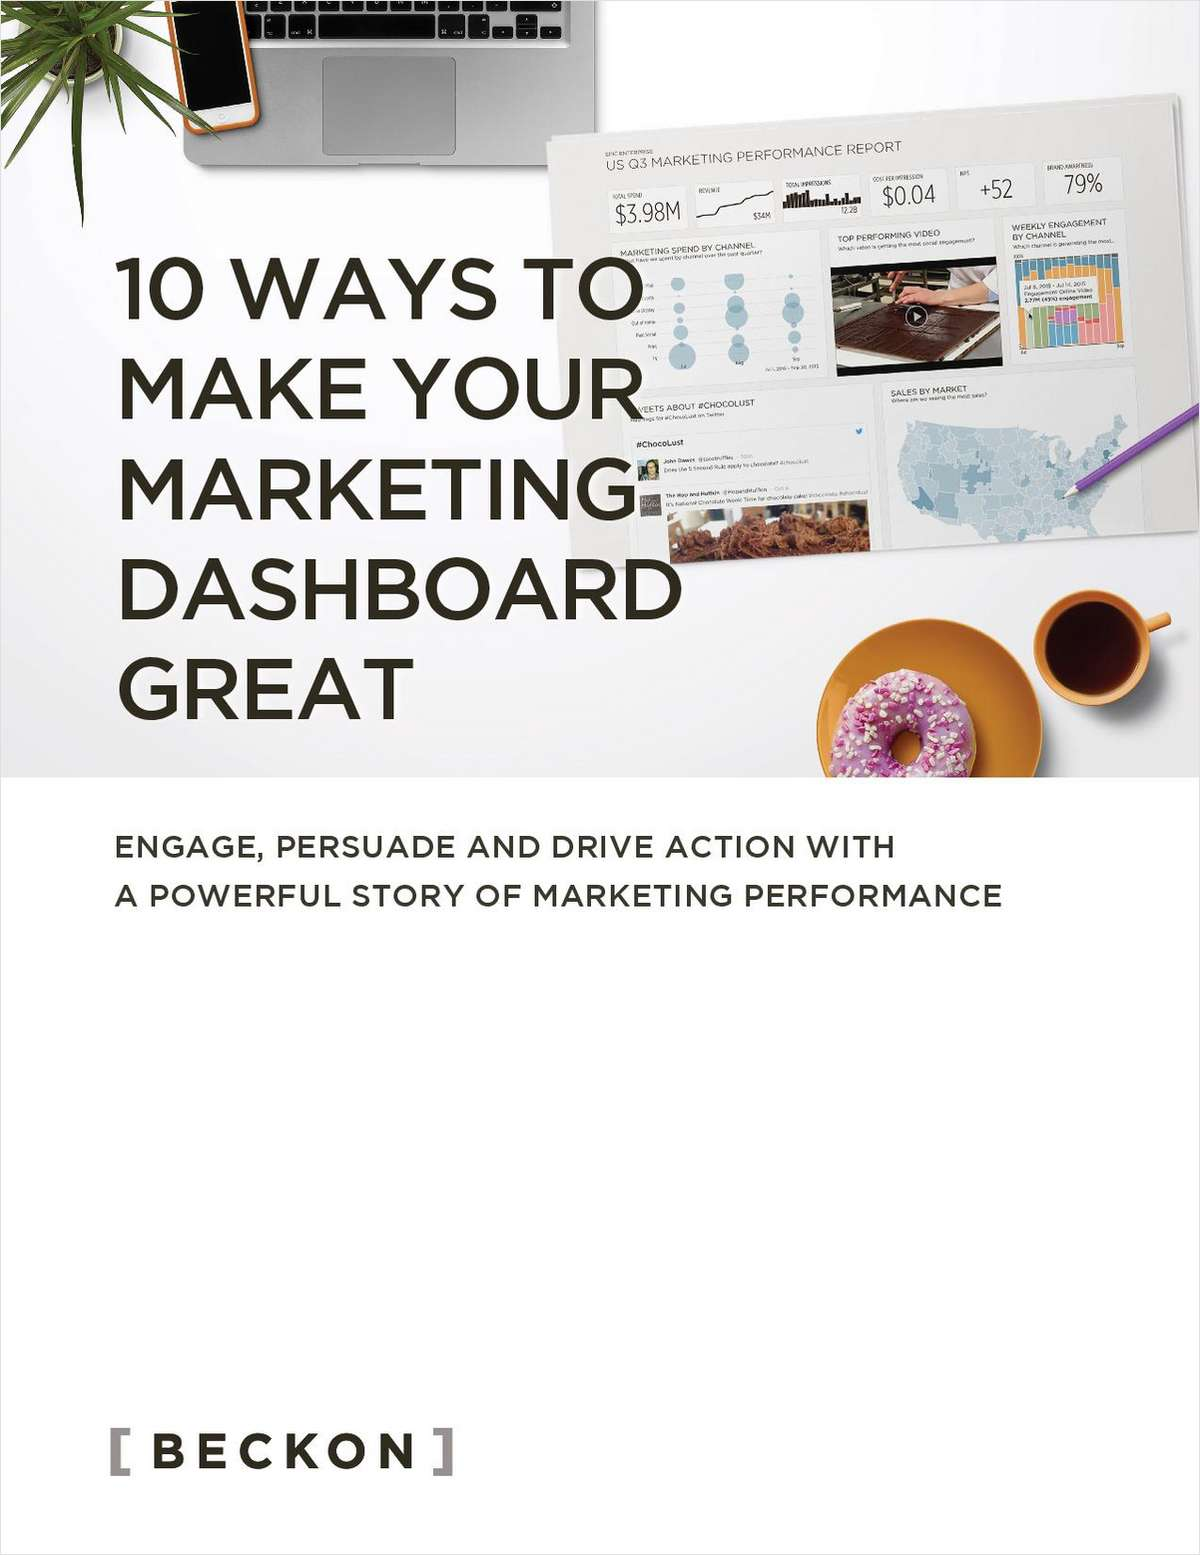 10 Ways to Make Your Marketing Dashboard Great